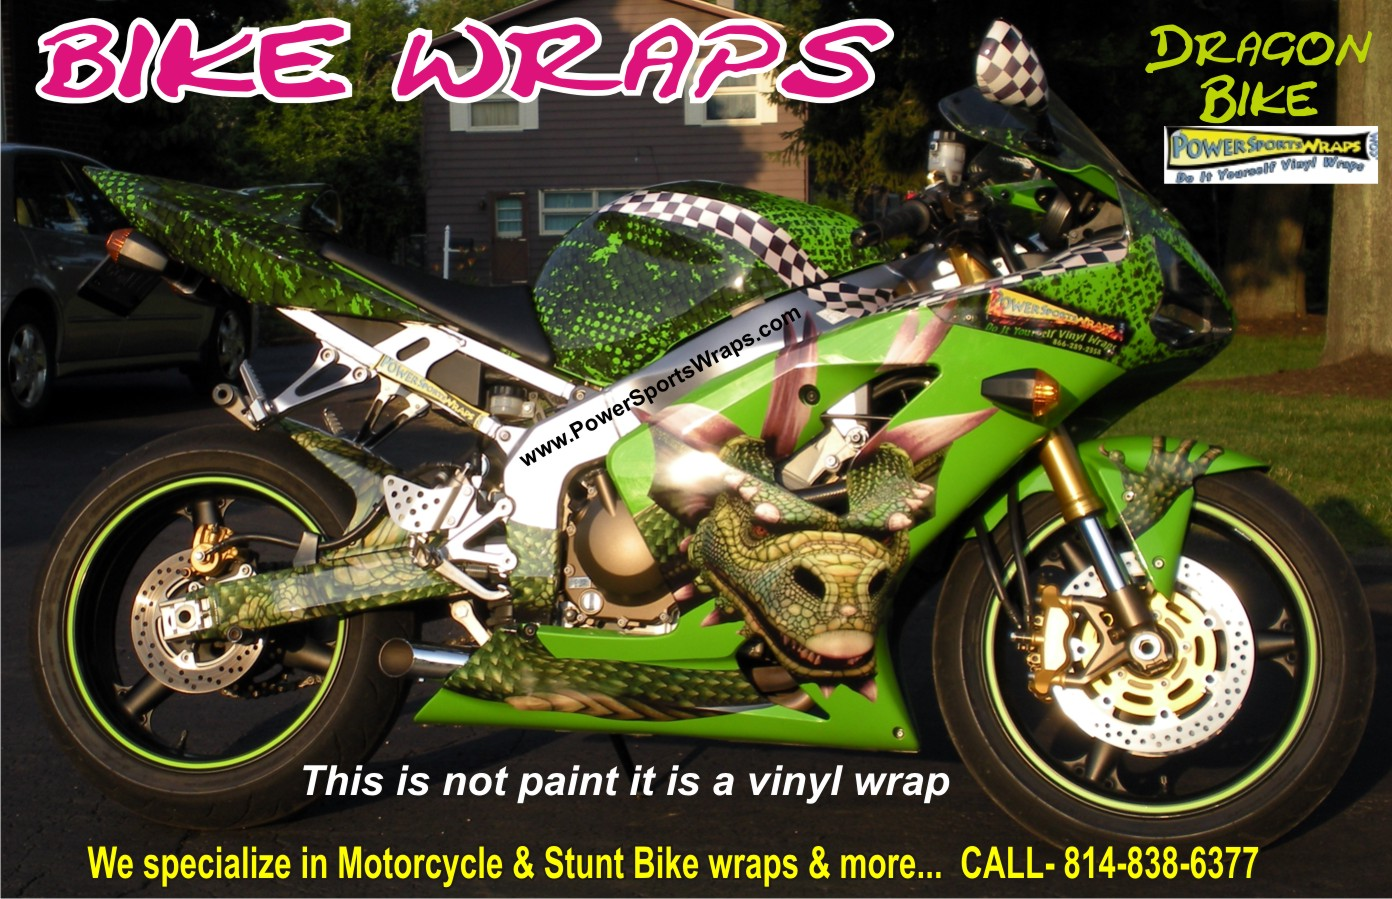 Bike wraps custom motorcycle wraps looks like paint cost way less